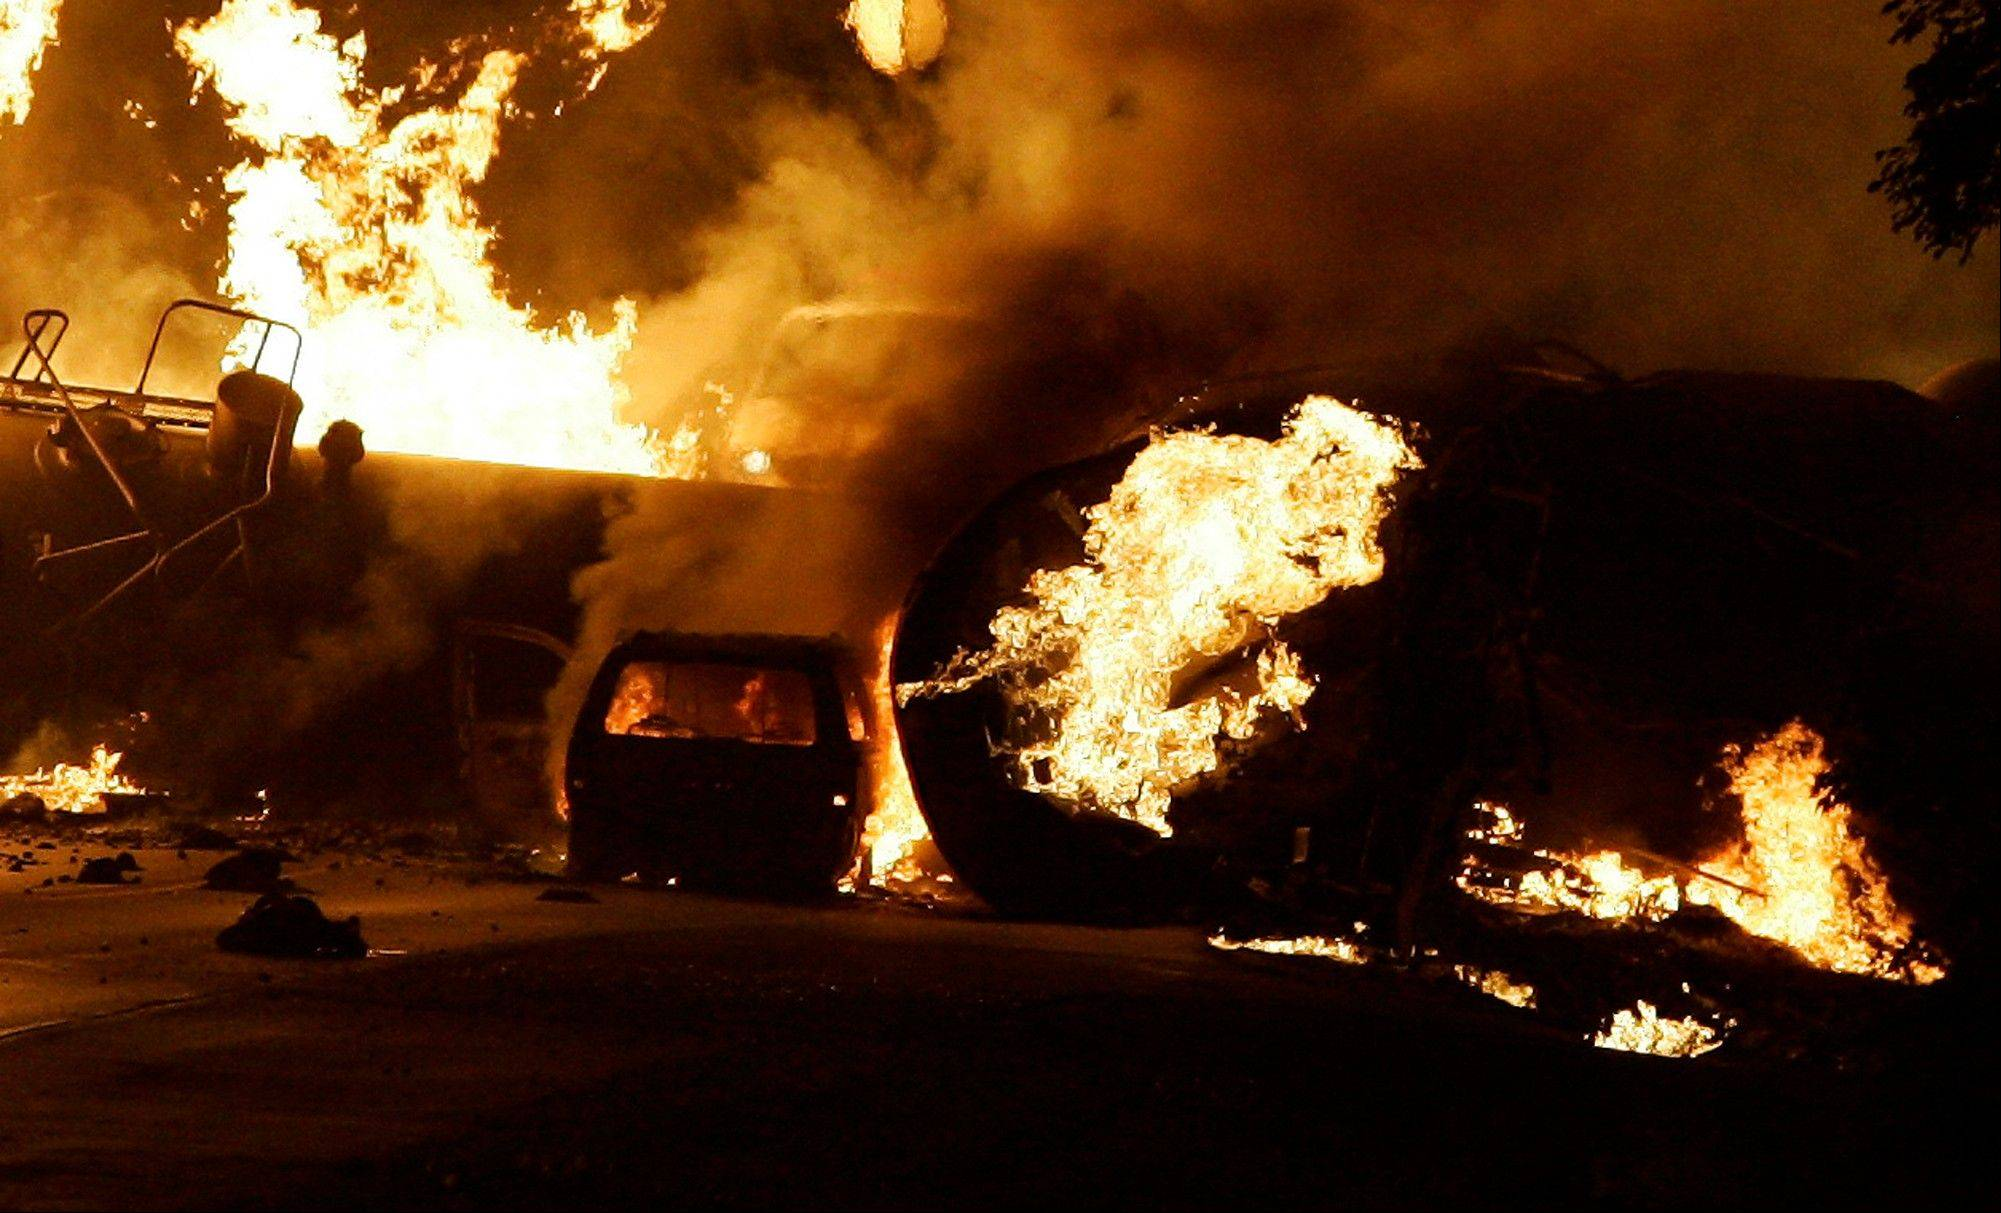 In this June 19, 2009 file photo, a vehicle burns near a train derailment near Rockford, Ill. Residents were forced to evacuate after the fiery freight train derailment northwest of Chicago.